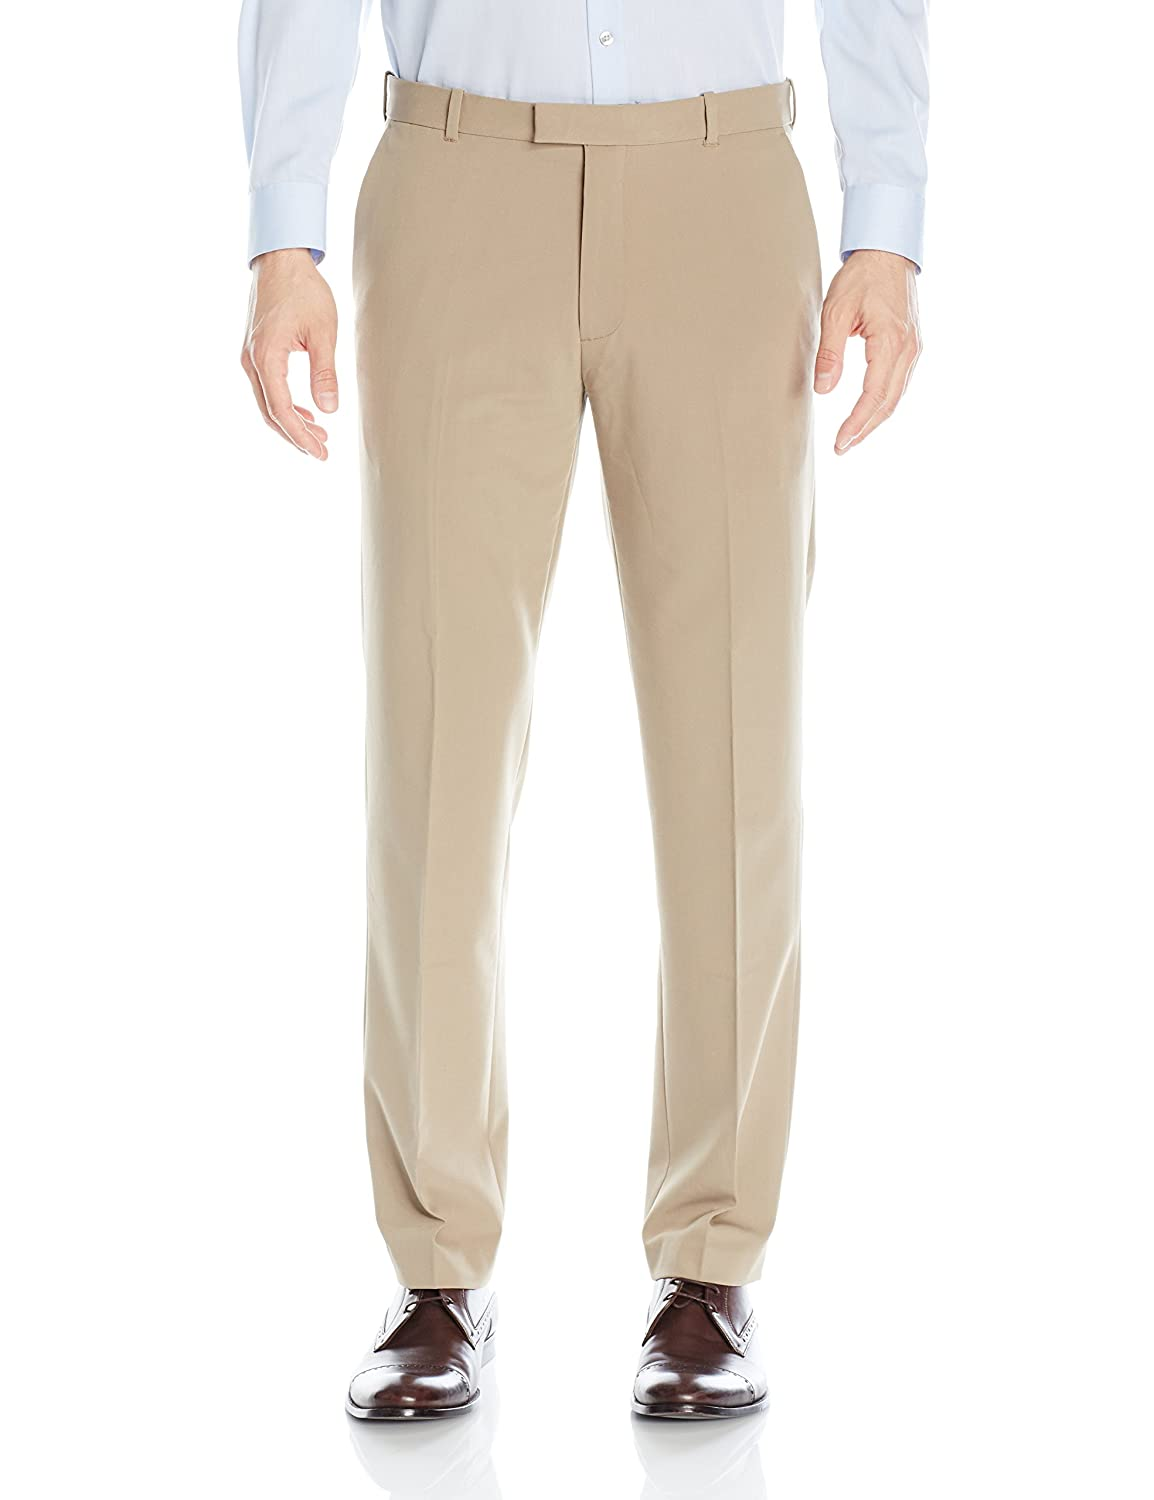 Van Heusen mens Flex Straight Fit Flat Front Pant 505M104